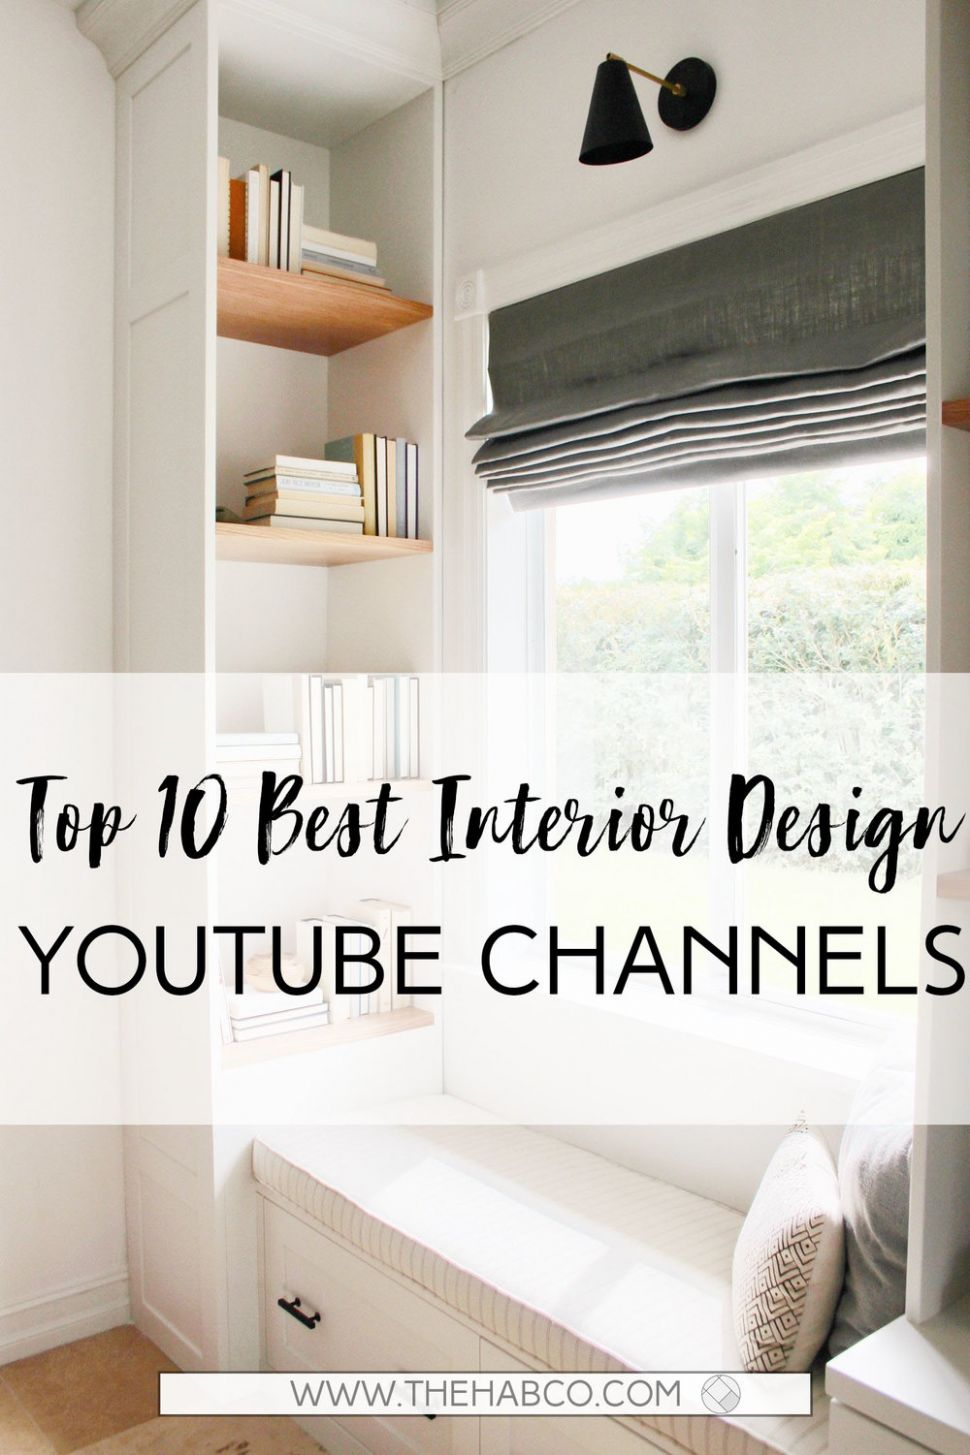 Top 11 Best Interior Design YouTube Channels — The Habitat ..